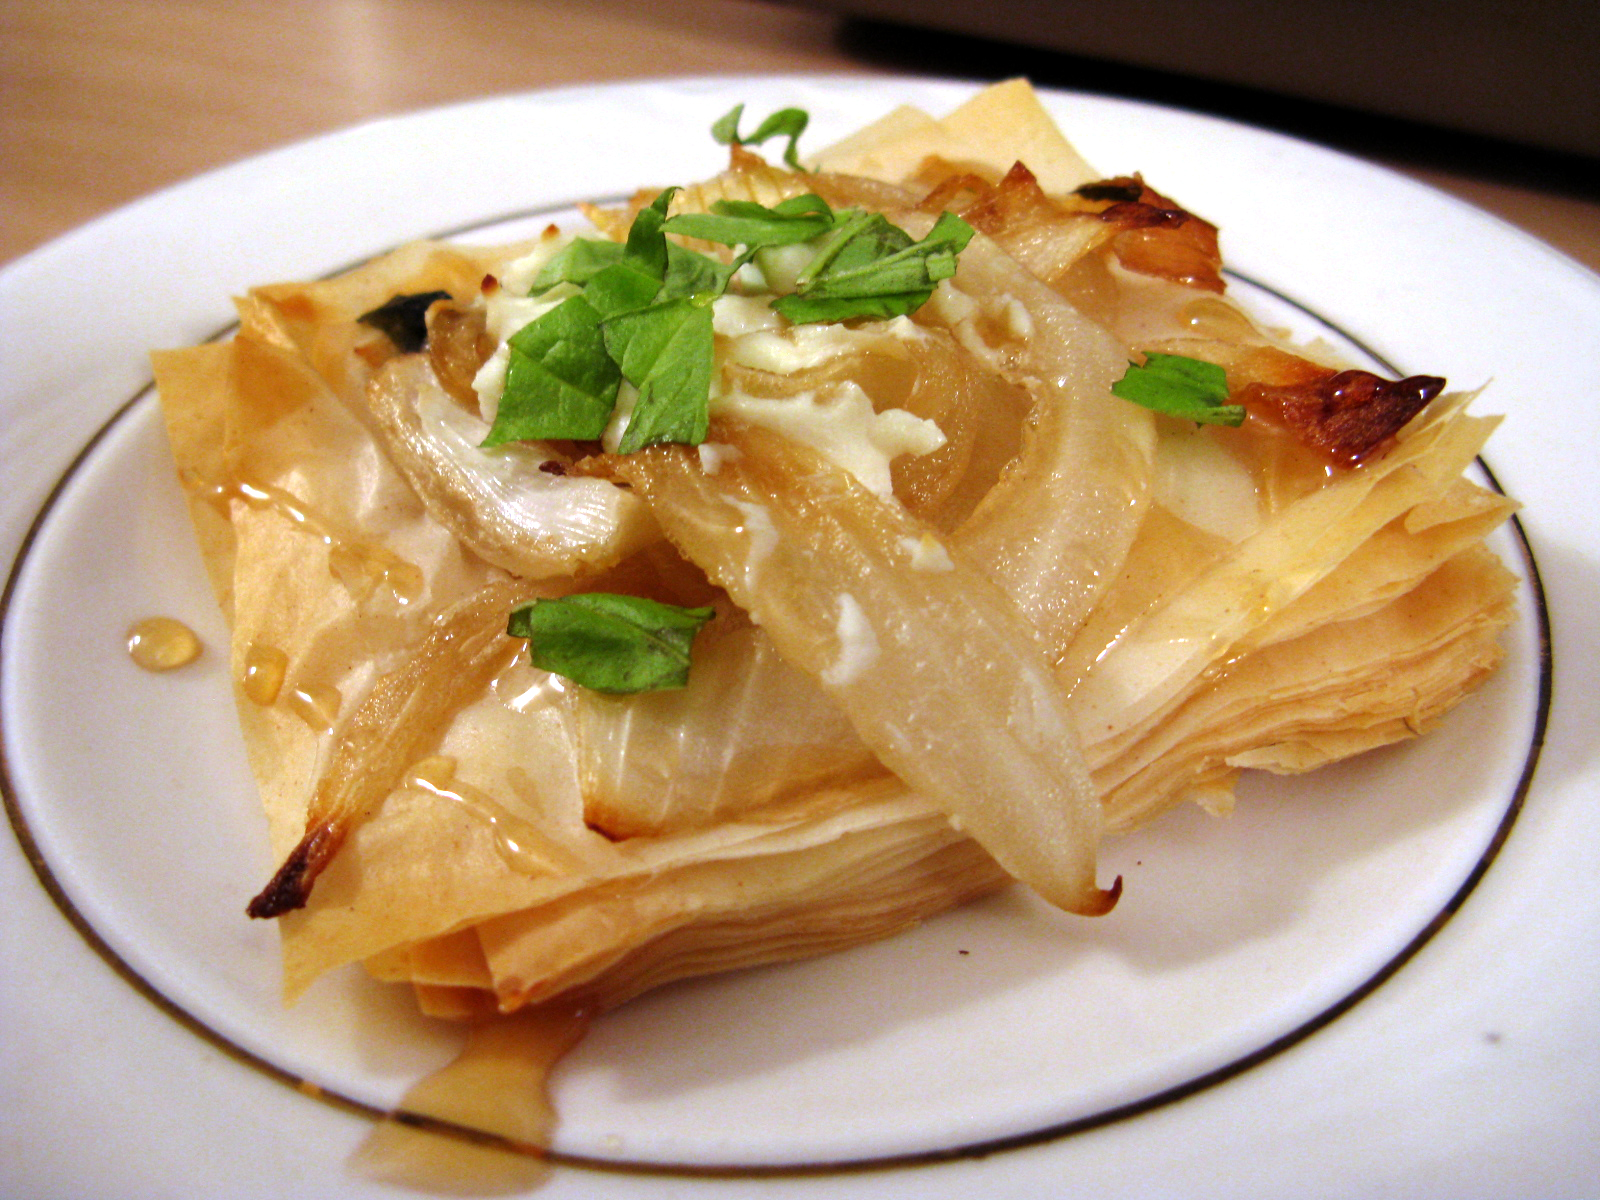 Three-Onion Pie with Feta or Goat Cheese